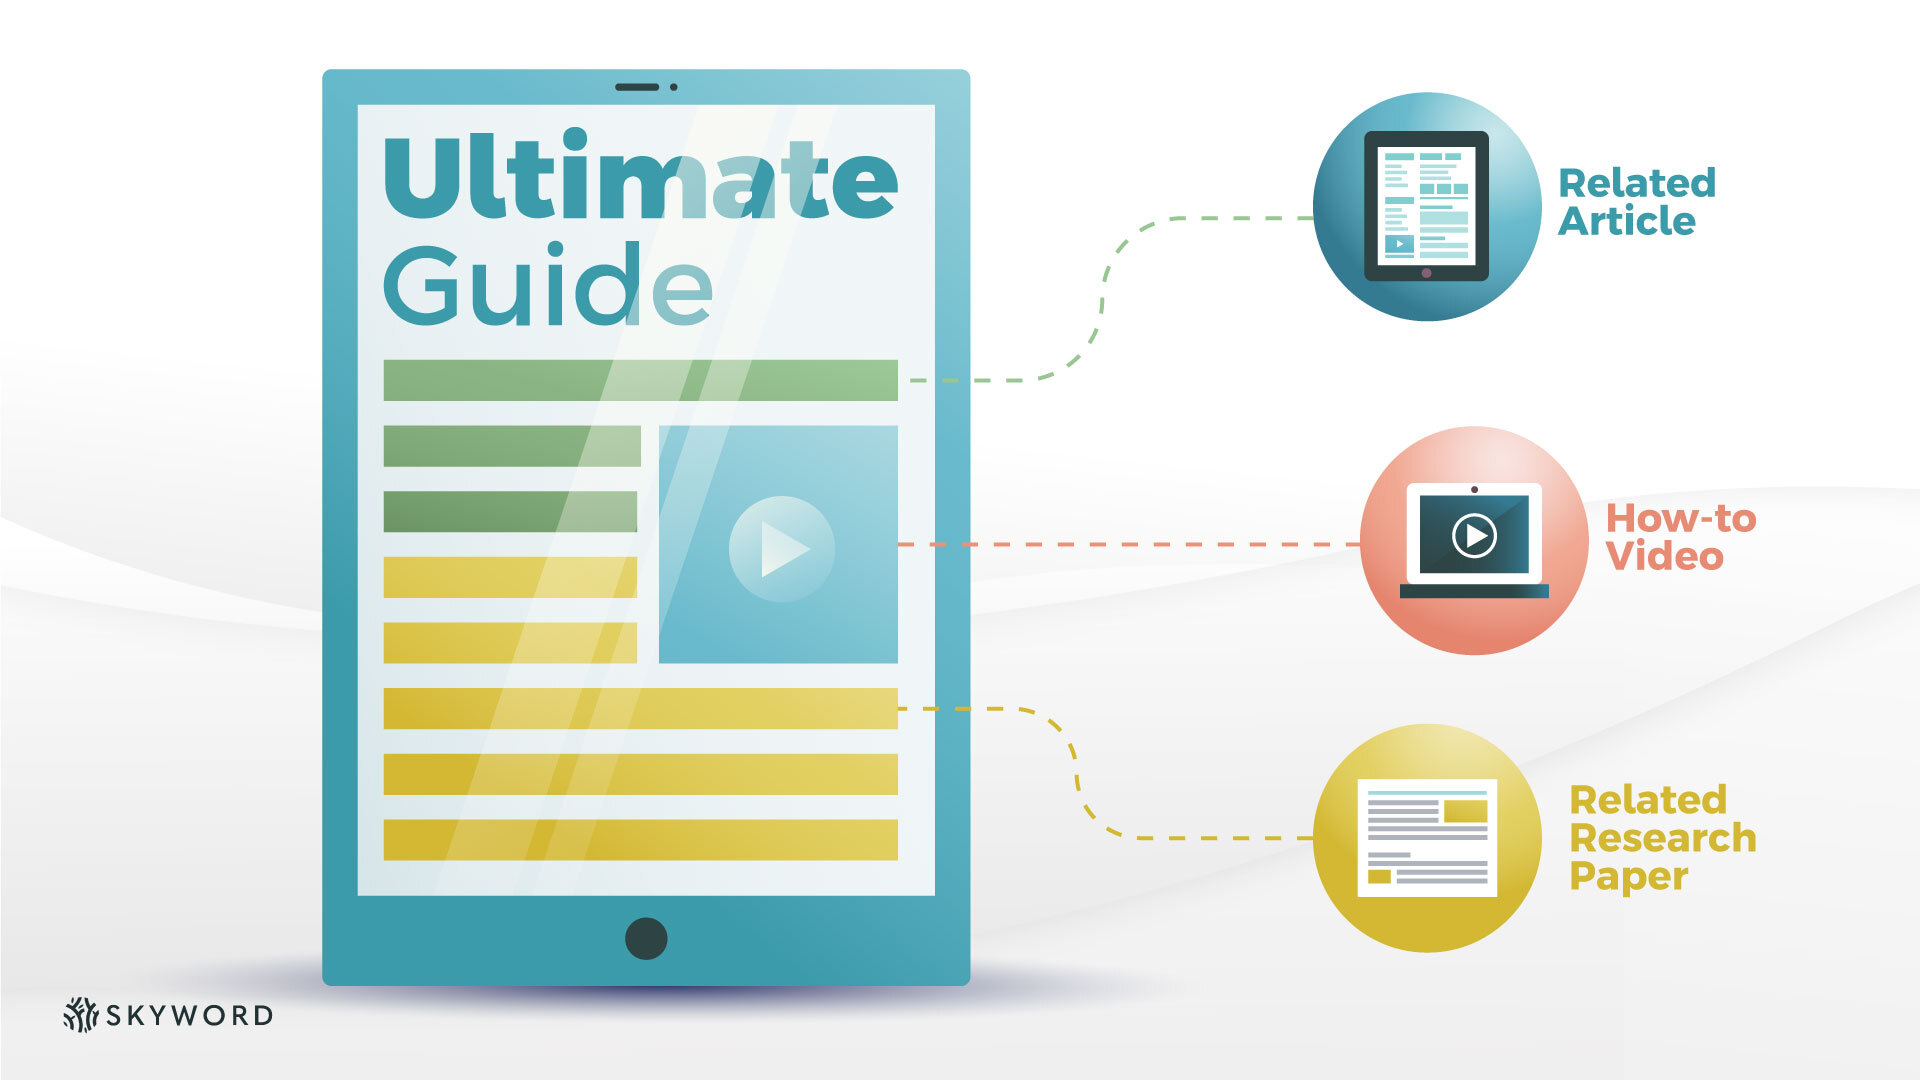 an ultimate guide crosslinking to related content